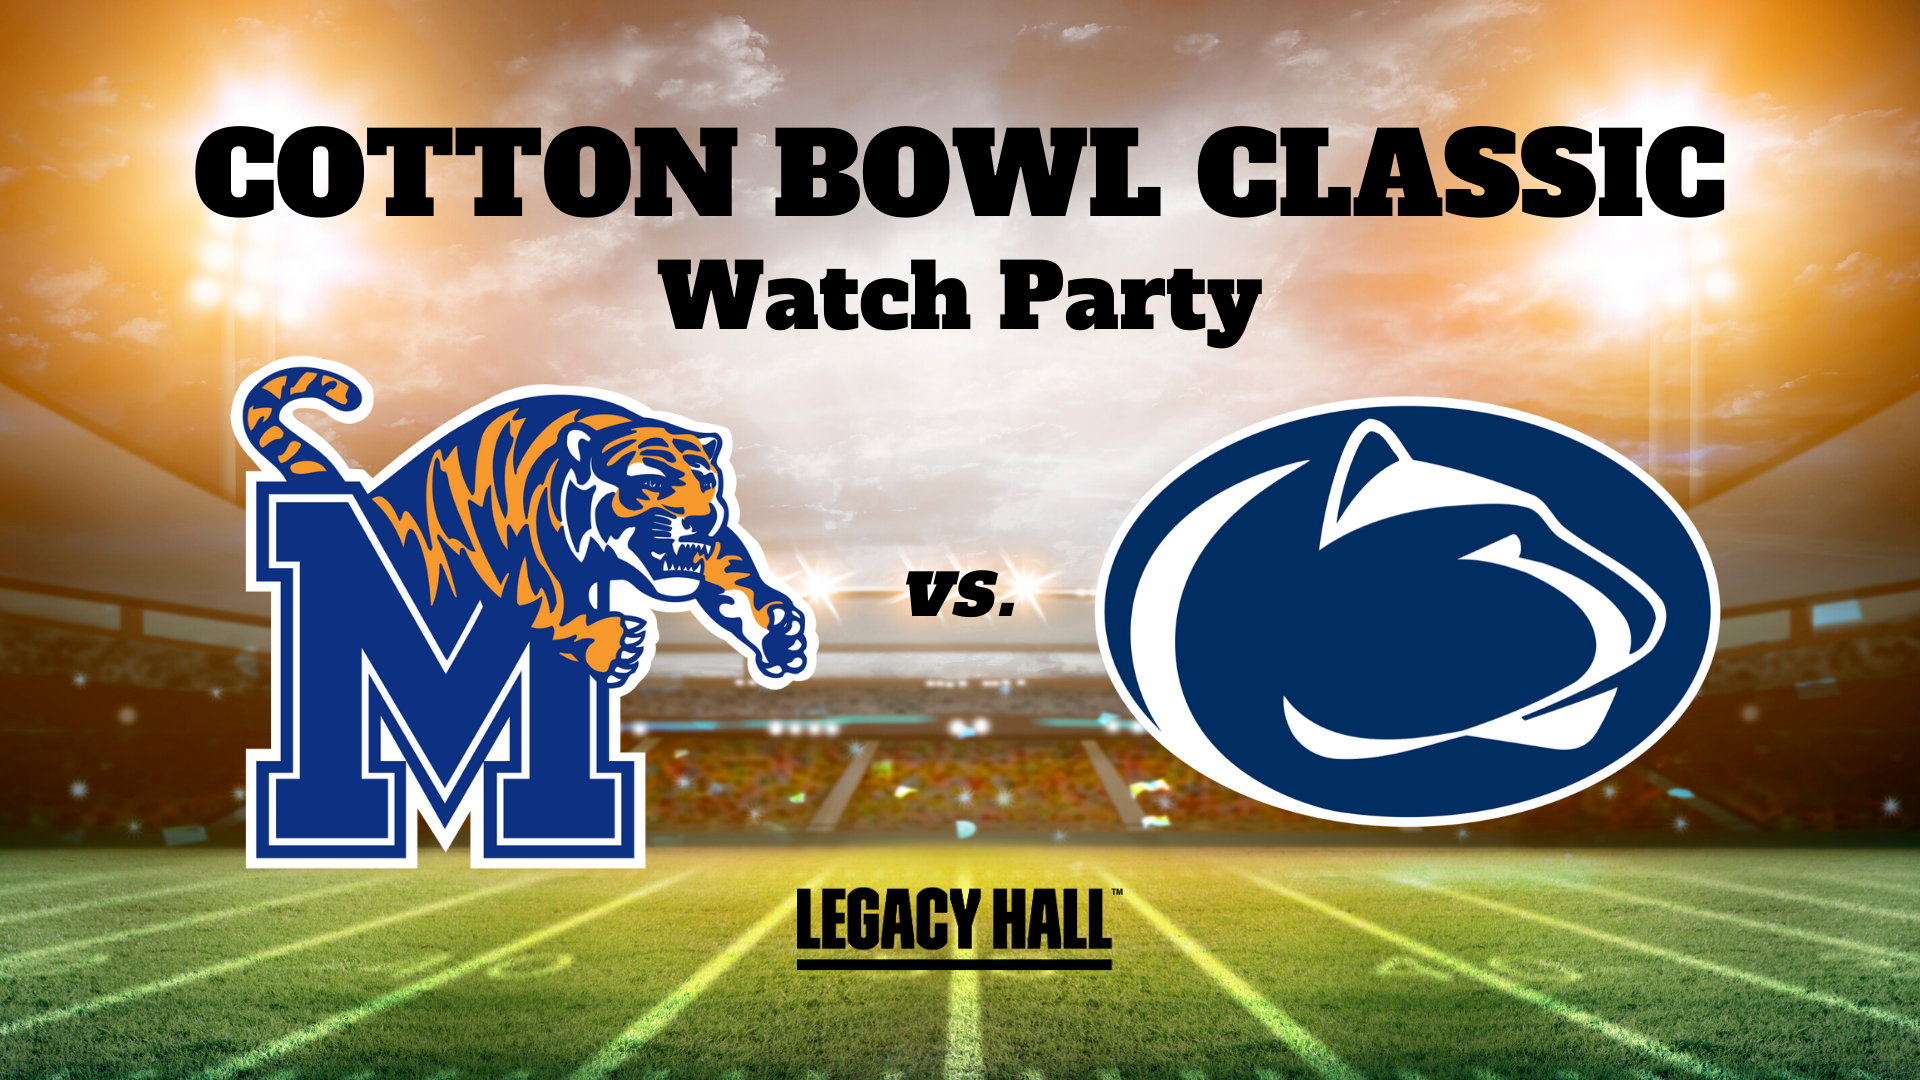 Cotton Bowl Classic Watch Party - hero